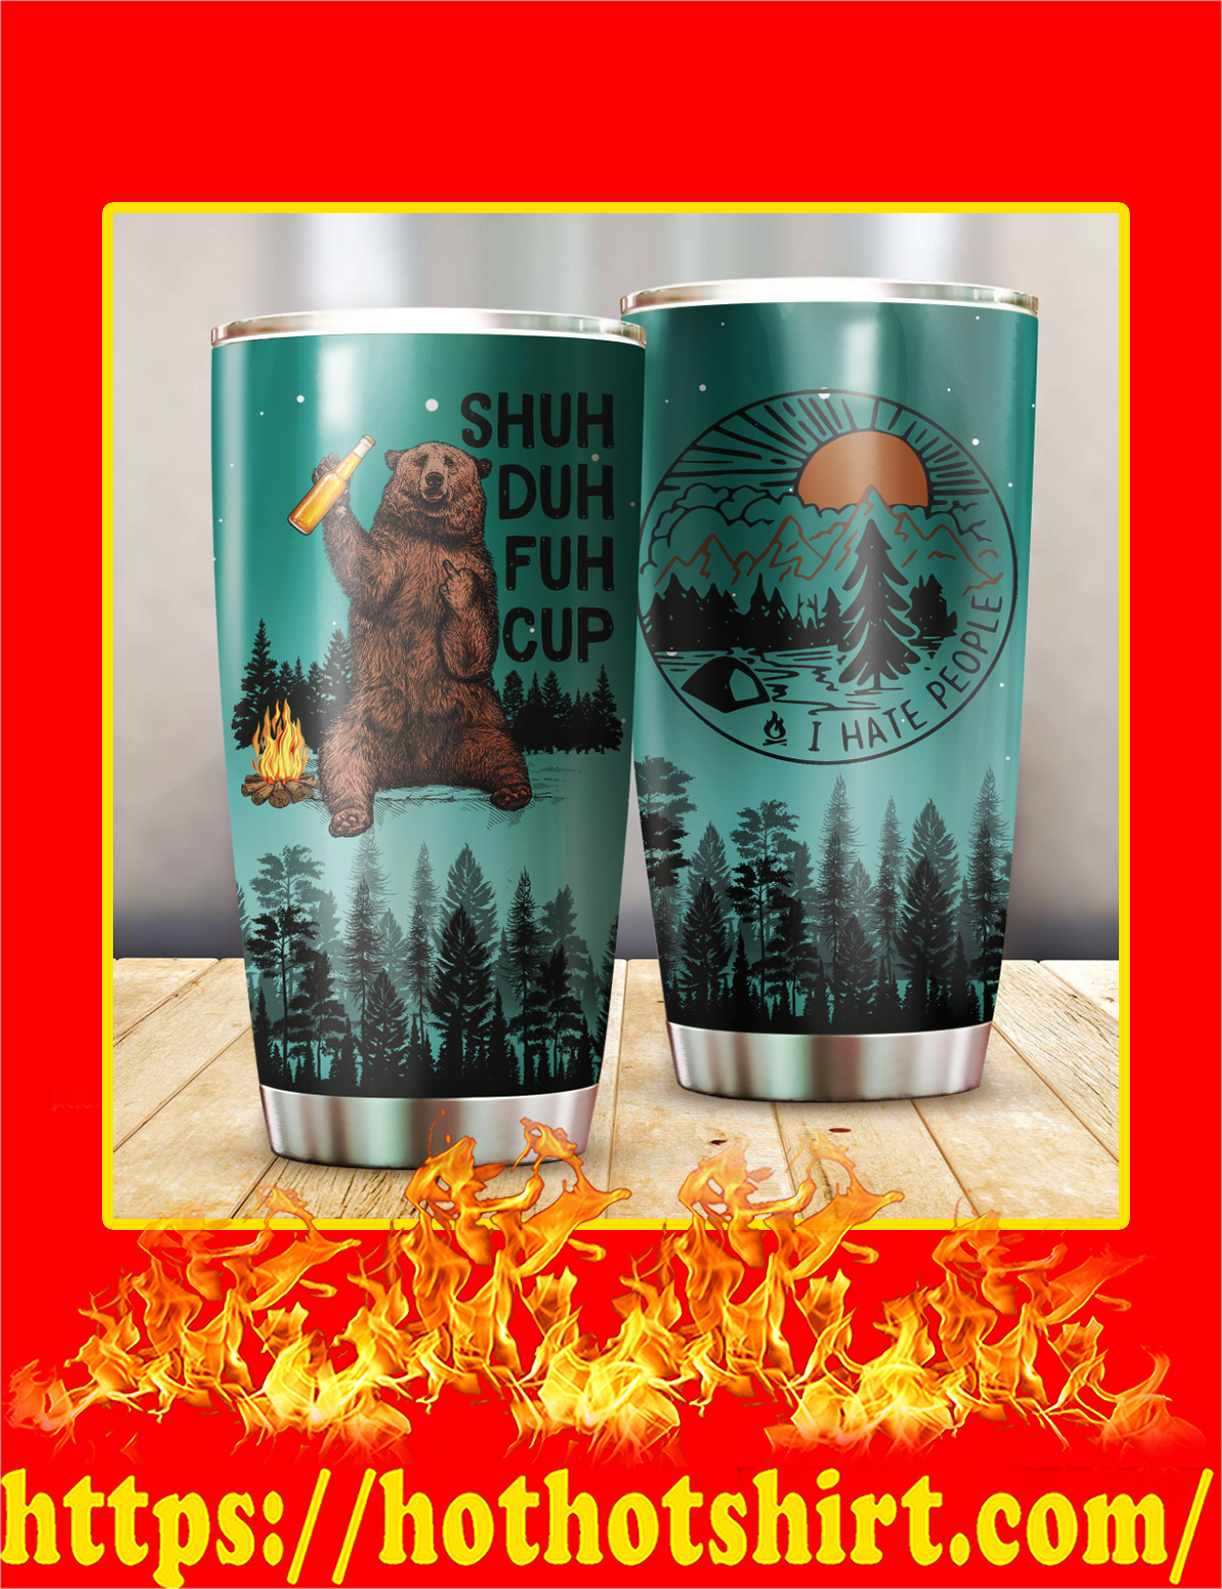 Bear Shuh Duh Fuh Cup I Hate People Camping Tumbler - Ligh blue